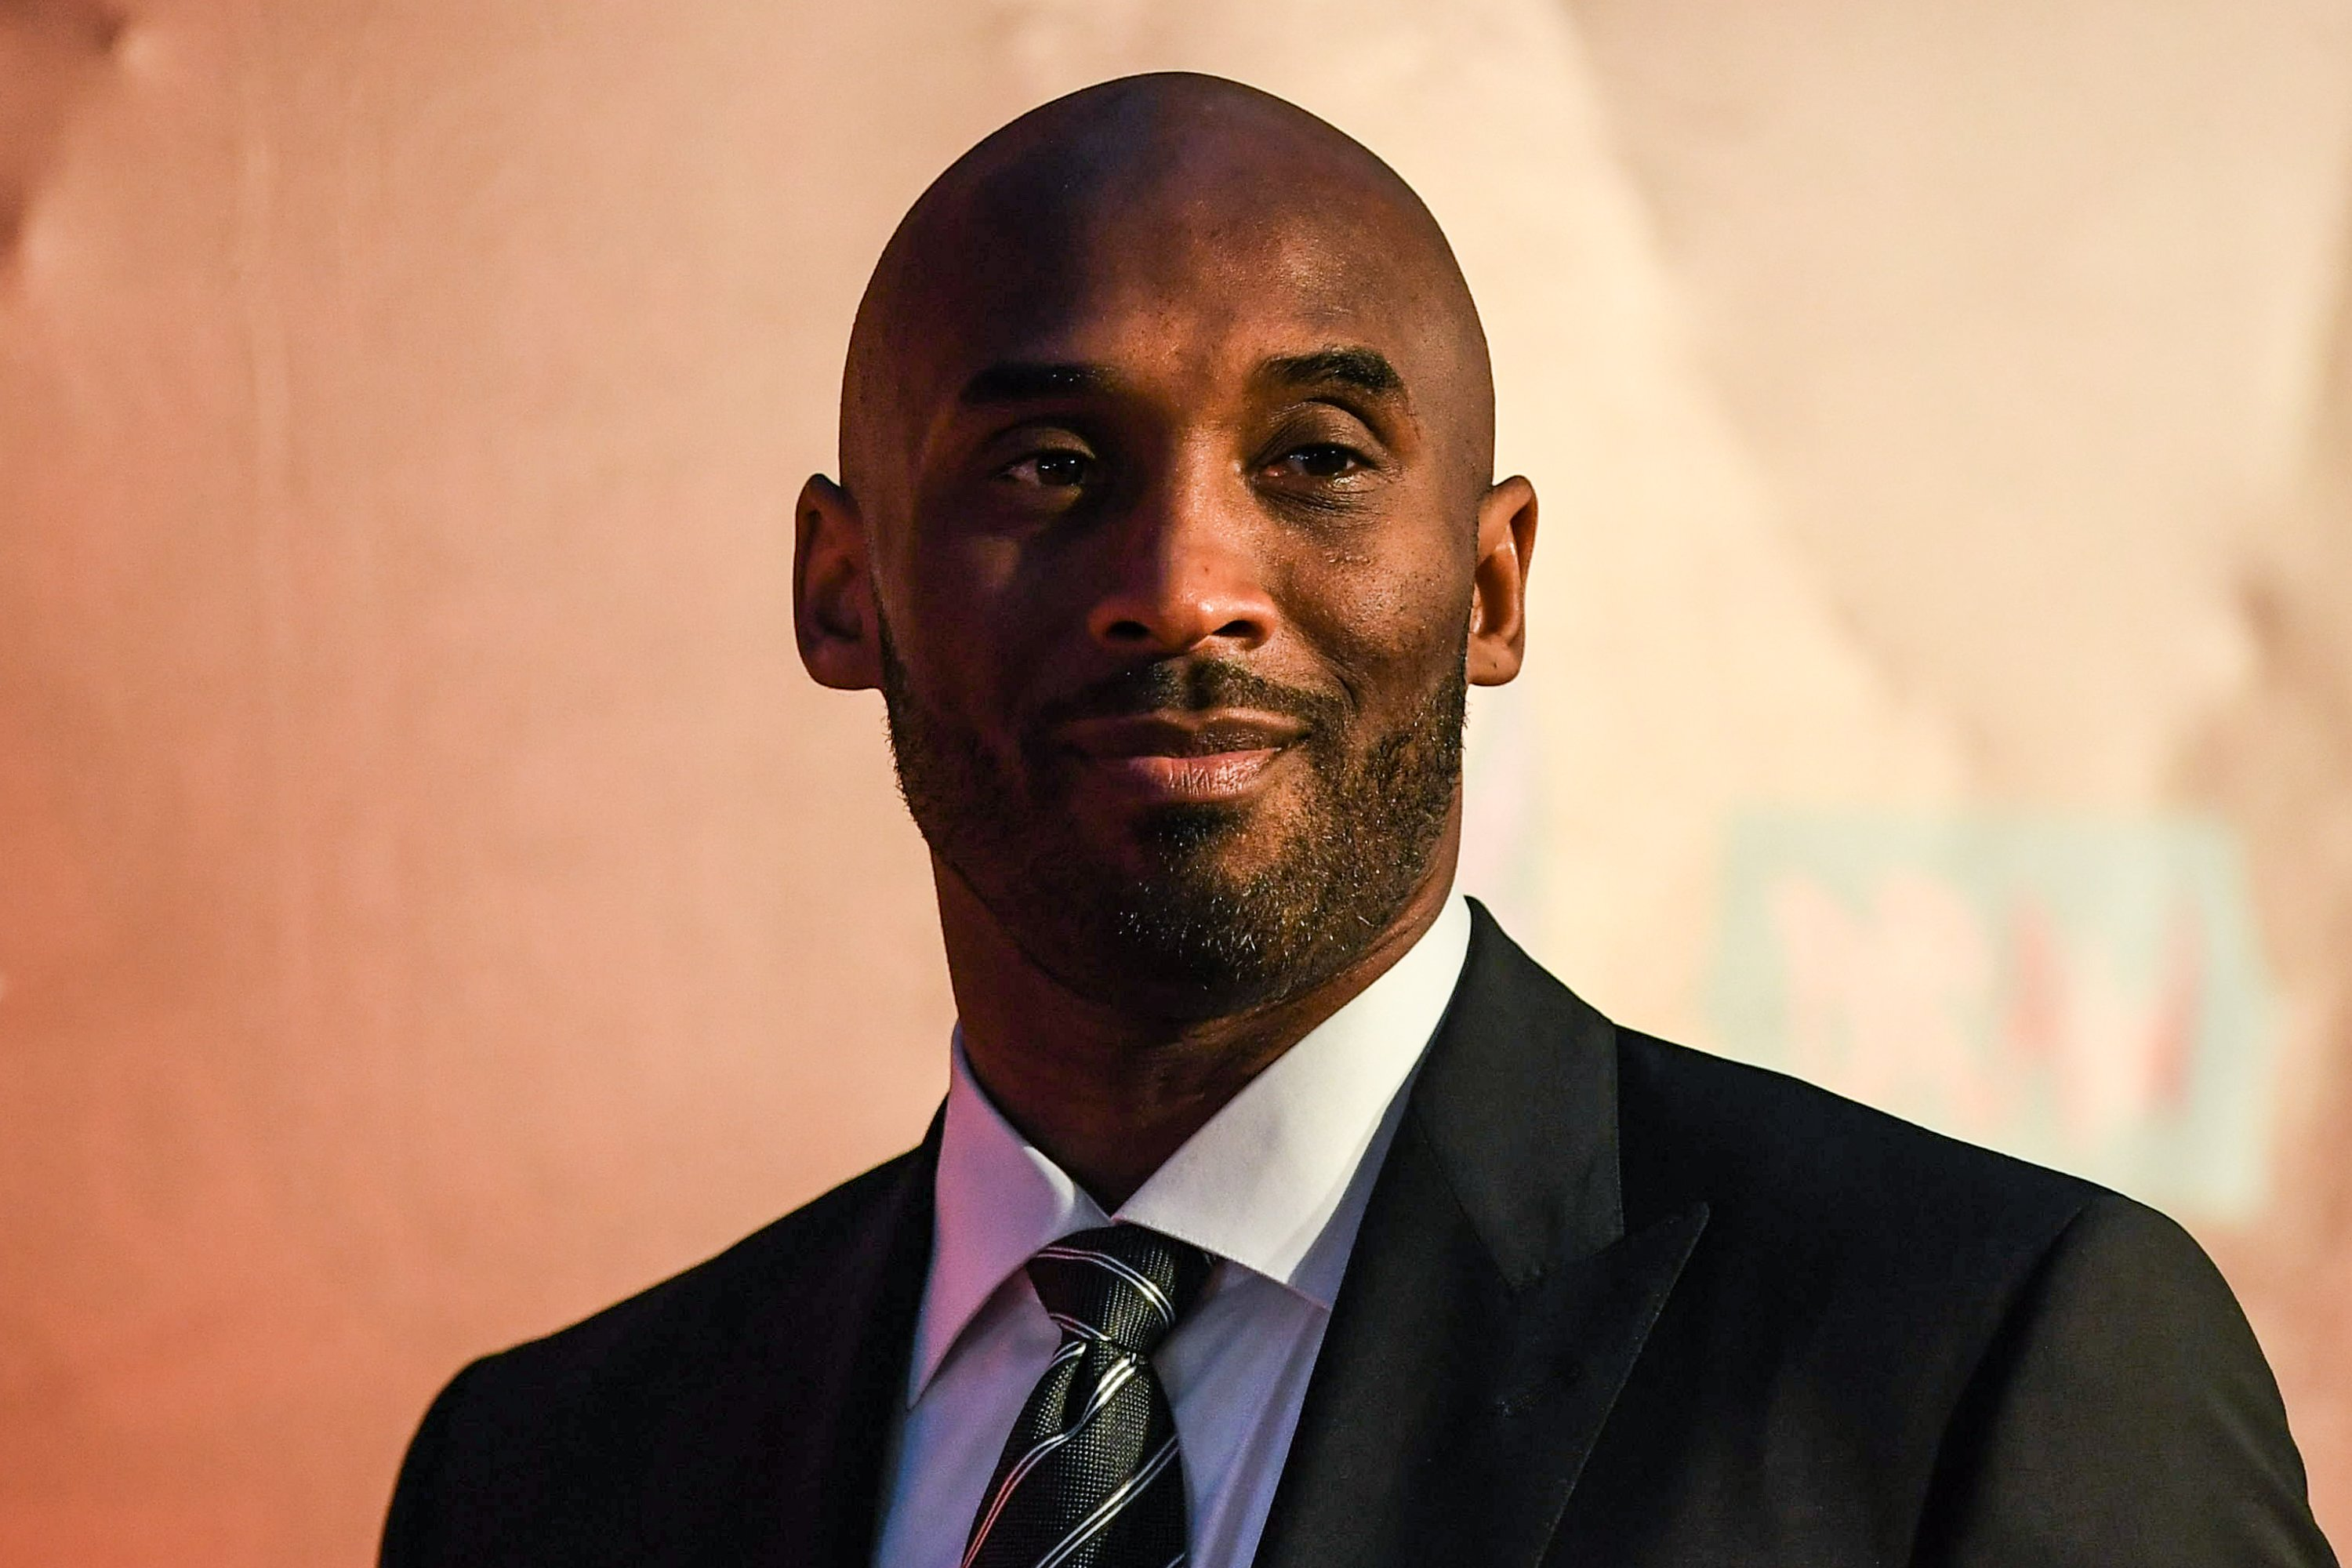 Kobe Bryant during the FIBA Basketball World Cup 2019 Draw Ceremony on March 16, 2019 | Photo: GettyImages